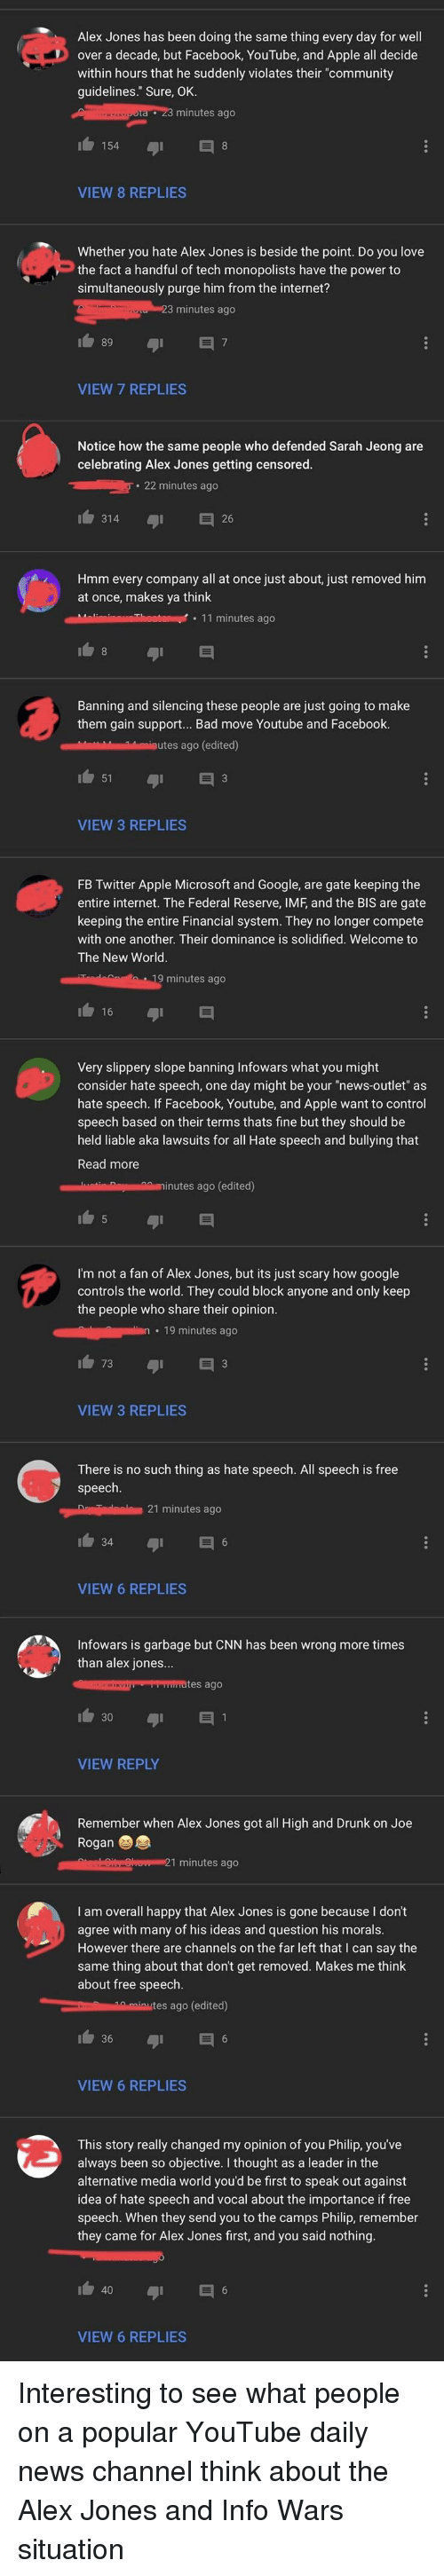 "Apple, Bad, and cnn.com: Alex Jones has been doing the same thing every day for well  over a decade, but Facebook, YouTube, and Apple all decide  within hours that he suddenly violates their ""community  guidelines."" Sure, OK.  minutes ago  VIEW 8 REPLIES  Whether you hate Alex Jones is beside the point. Do you love  the fact a handful of tech monopolists have the power to  simultaneously purge him from the internet?  minutes ago  89  VIEW 7 REPLIES  Notice how the same people who defended Sarah Jeong are  celebrating Alex Jones getting censored  22 minutes ago  314  26  Hmm every company all at once just about, just removed him  at once, makes ya think  Malinninheto11 minutes ago  Banning and silencing these people are just going to make  them gain support... Bad move Youtube and Facebook.  Mahiutes ago (edited)  51  VIEW 3 REPLIES  FB Twitter Apple Microsoft and Google, are gate keeping the  entire internet. The Federal Reserve, IMF, and the BIS are gate  keeping the entire Financial system. They no longer compete  with one another. Their dominance is solidified. Welcome to  The New World  9 minutes ago  16  Very slippery slope banning Infowars what you might  consider hate speech, one day might be your ""news-outlet"" as  hate speech. If Facebook, Youtube, and Apple want to control  speech based on their terms thats fine but they should be  held liable aka lawsuits for all Hate speech and bullying that  Read more  I'm not a fan of Alex Jones, but its just scary how google  controls the world. They could block anyone and only keep  the people who share their opinion.  . 19 minutes ago  73  VIEW 3 REPLIES  There is no such thing as hate speech. All speech is free  speech.  21 minutes ago  VIEW 6 REPLIES  Infowars is garbage but CNN has been wrong more times  than alex jones...  VIEW REPLY  Remember when Alex Jones got all High and Drunk on Joe  Rogan  I am overall happy that Alex Jones is gone because I don't  agree with many of his ideas and question his morals.  However there are channels on the far left that I can say the  same thing about that don't get removed. Makes me think  about free speech  es ago (edited)  VIEW 6 REPLIES  This story really changed my opinion of you Philip, you've  always been so objective. I thought as a leader in the  alternative media world you'd be first to speak out against  idea of hate speech and vocal about the importance if free  speech. When they send you to the camps Philip, remember  they came for Alex Jones first, and you said nothing.  b 40  VIEW 6 REPLIES"